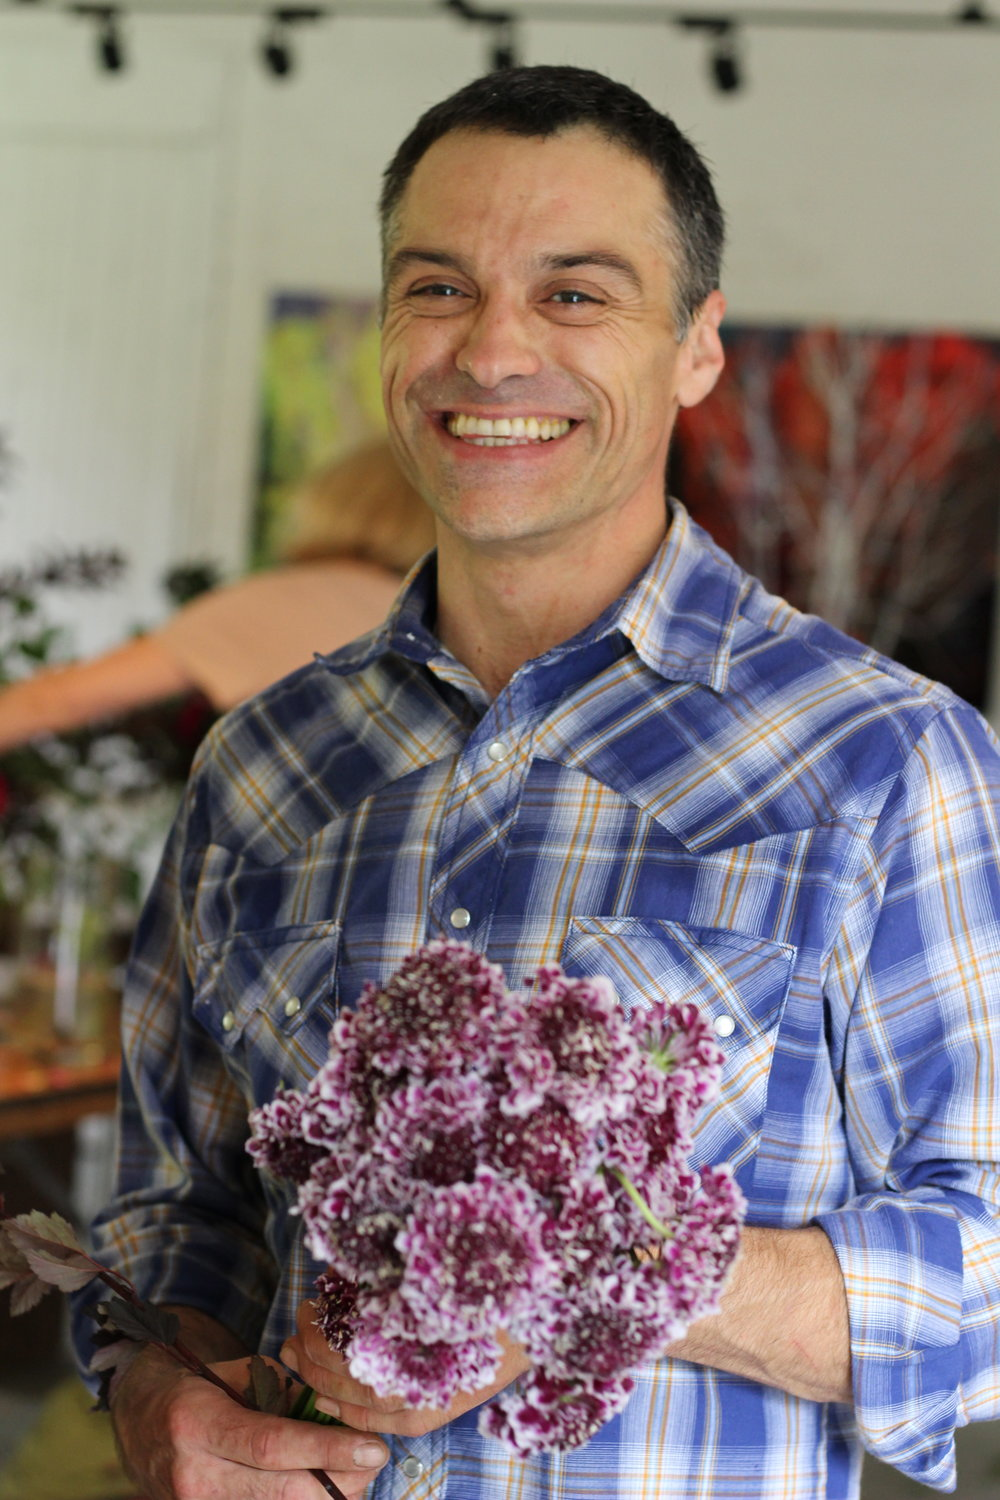 Too fun: Max Gill with Scabiosa atropurpurea 'Burgundy Bonnets' (I think)